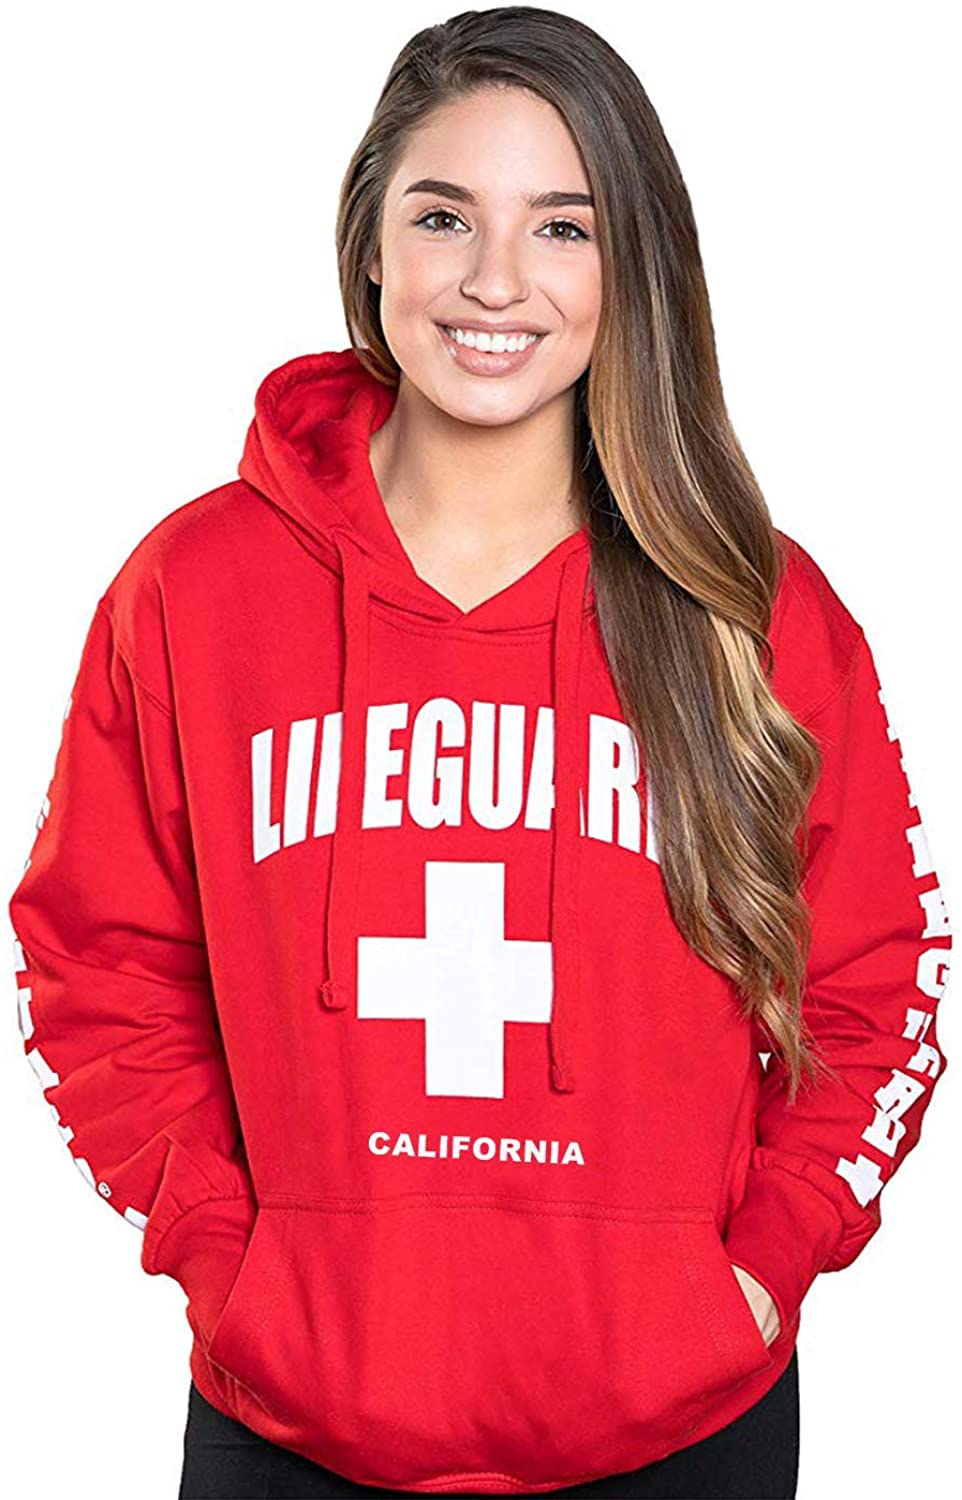 LIFEGUARD Officially Beauty Topics on TV products Licensed Ladies California Sweatshir Hoodie